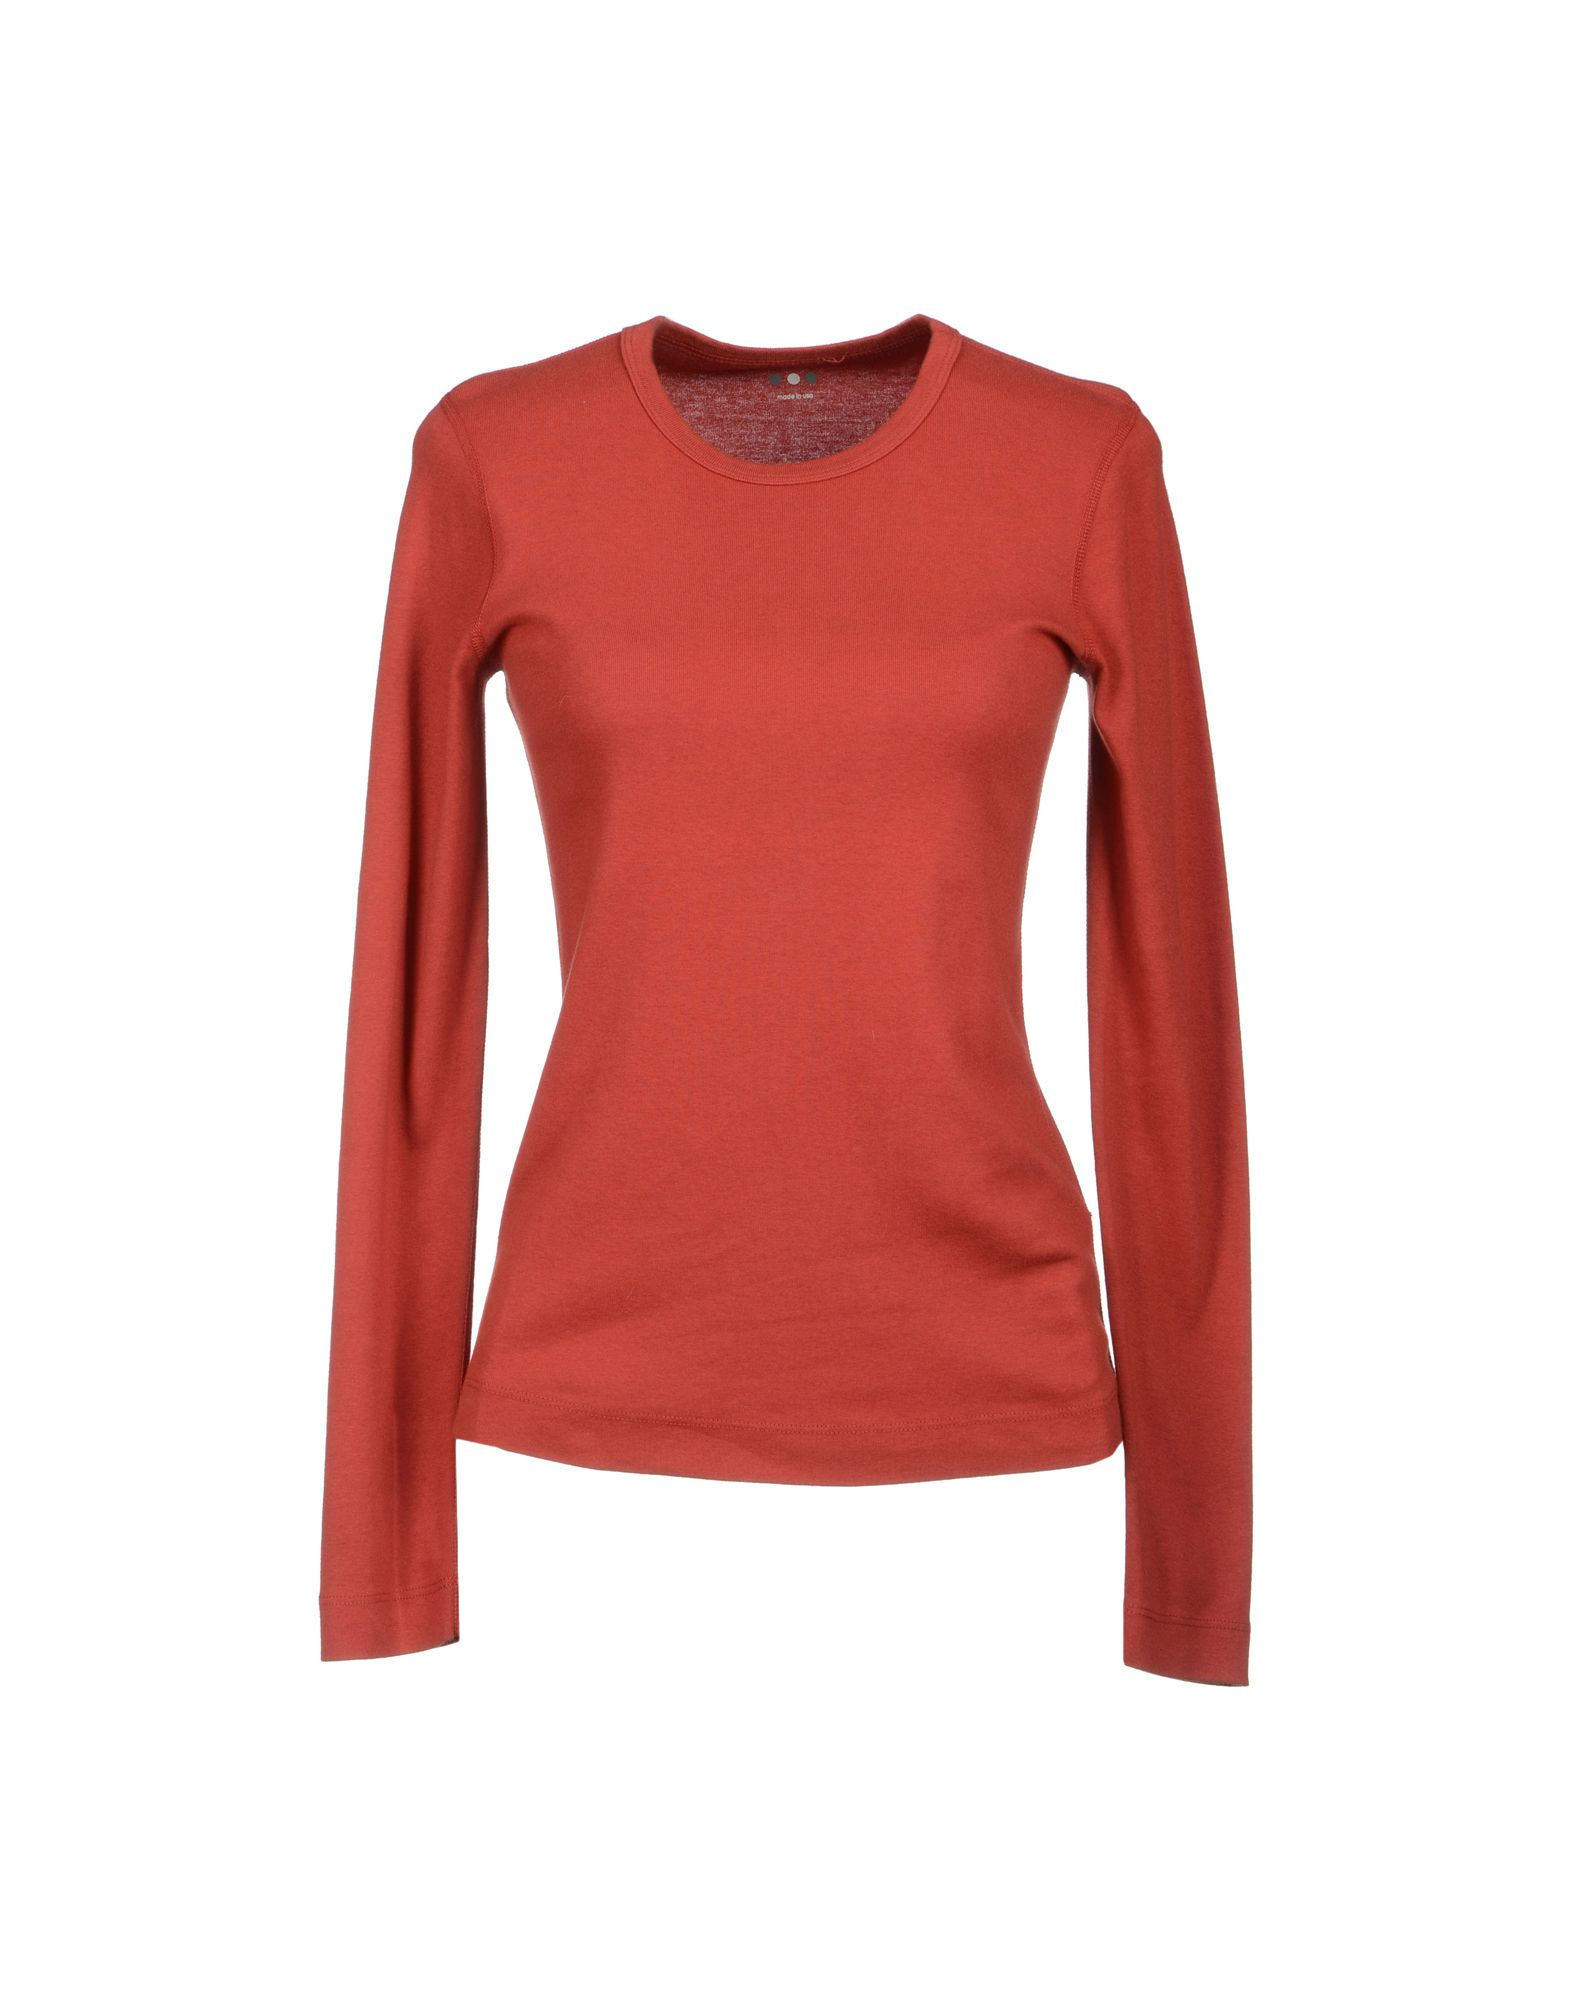 Three Dots Long Sleeve Tshirt In Red Rust Save 45 Lyst